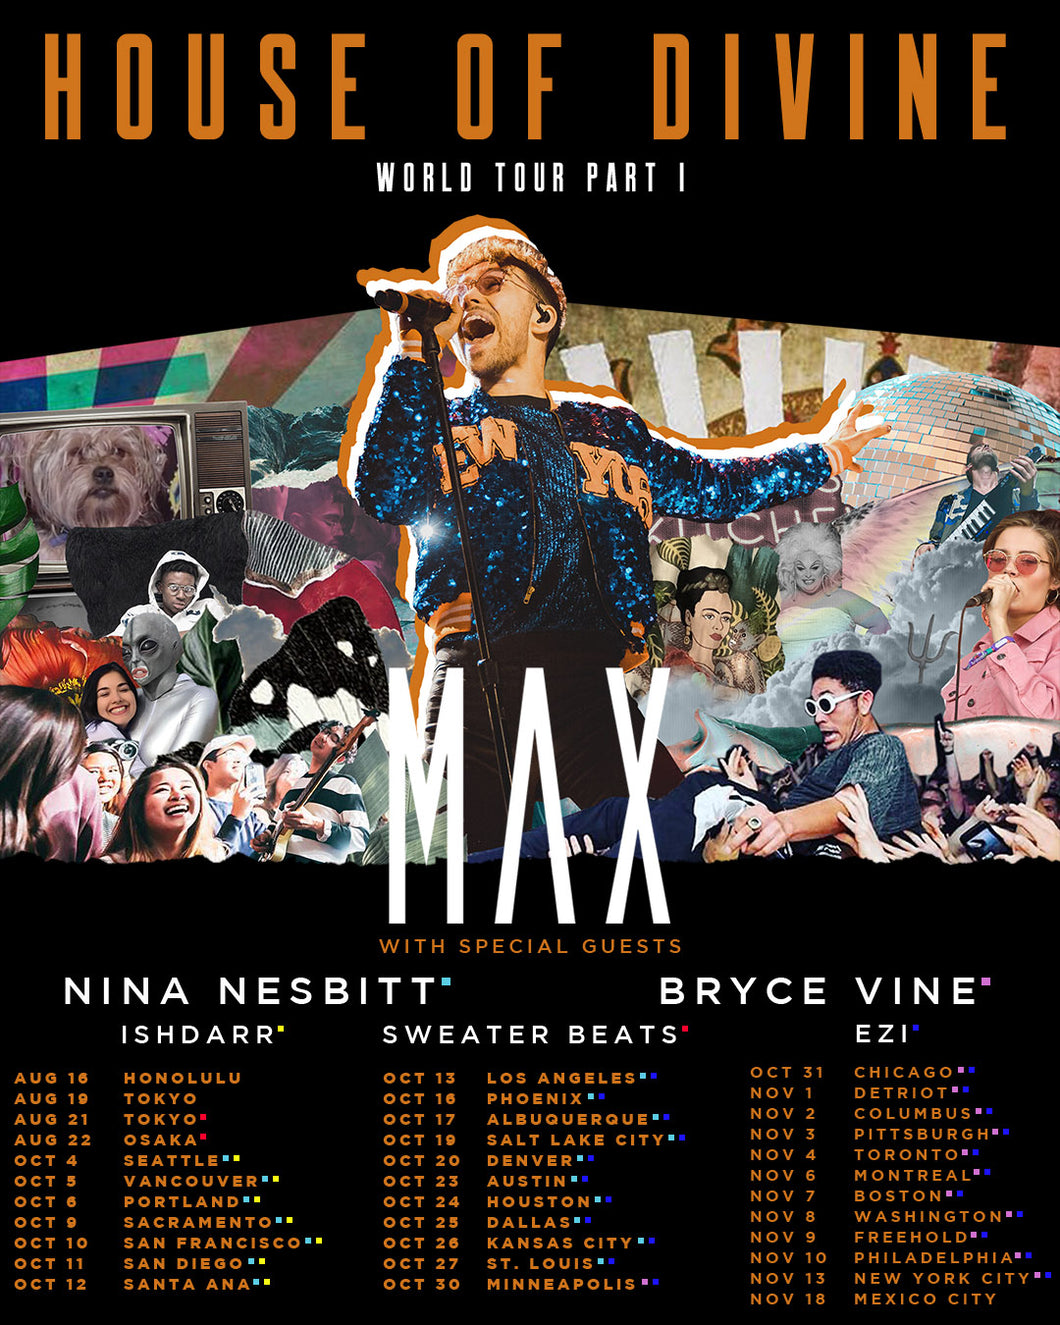 10/31/2018 - Chicago, IL - Bottom Lounge MAX Ticketless VIP Upgrade